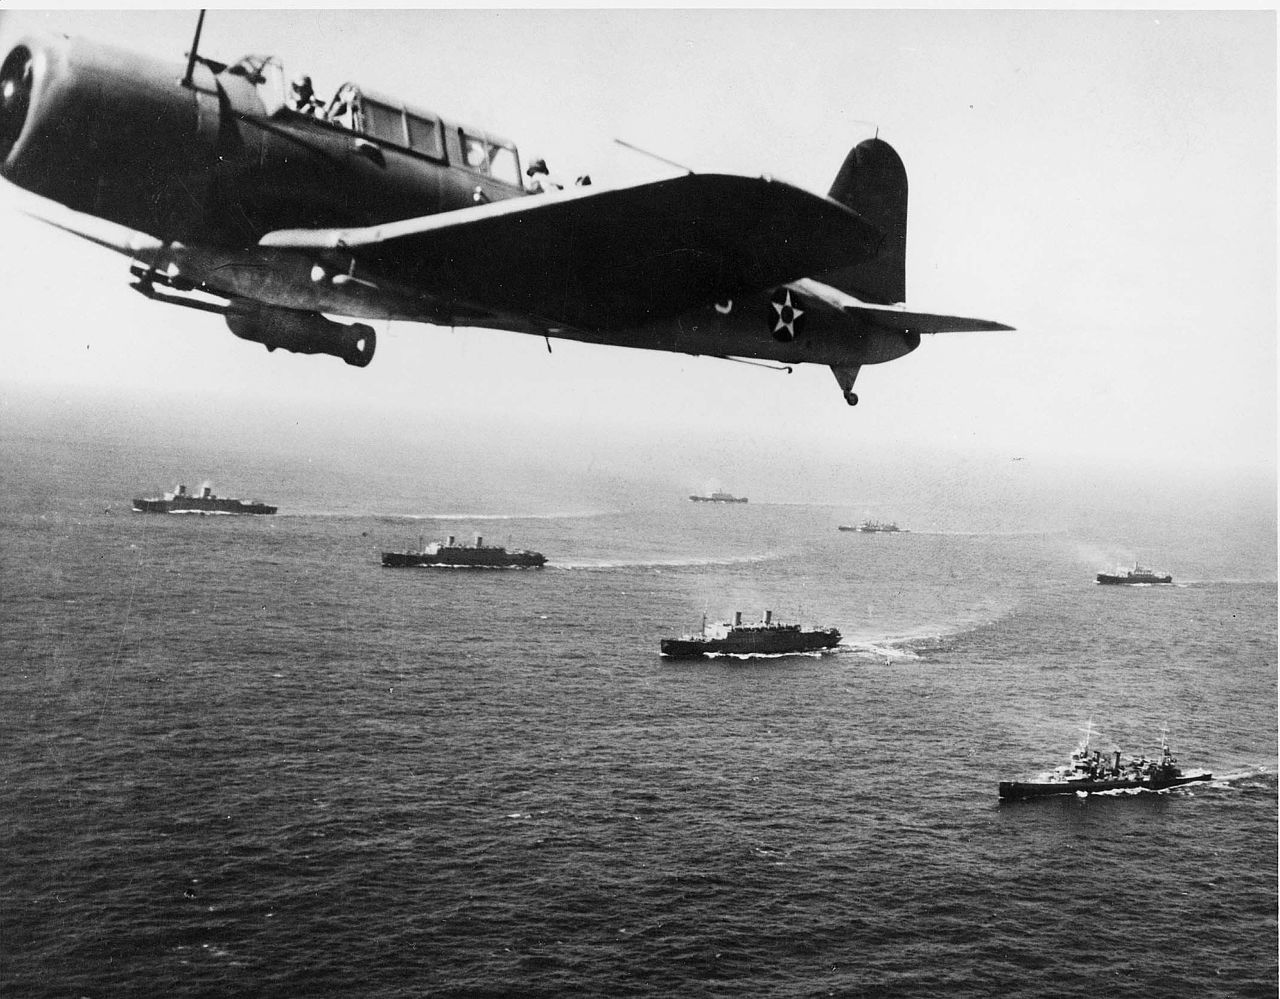 Convoy_WS-12_en_route_to_Cape_Town,_1941.jpg